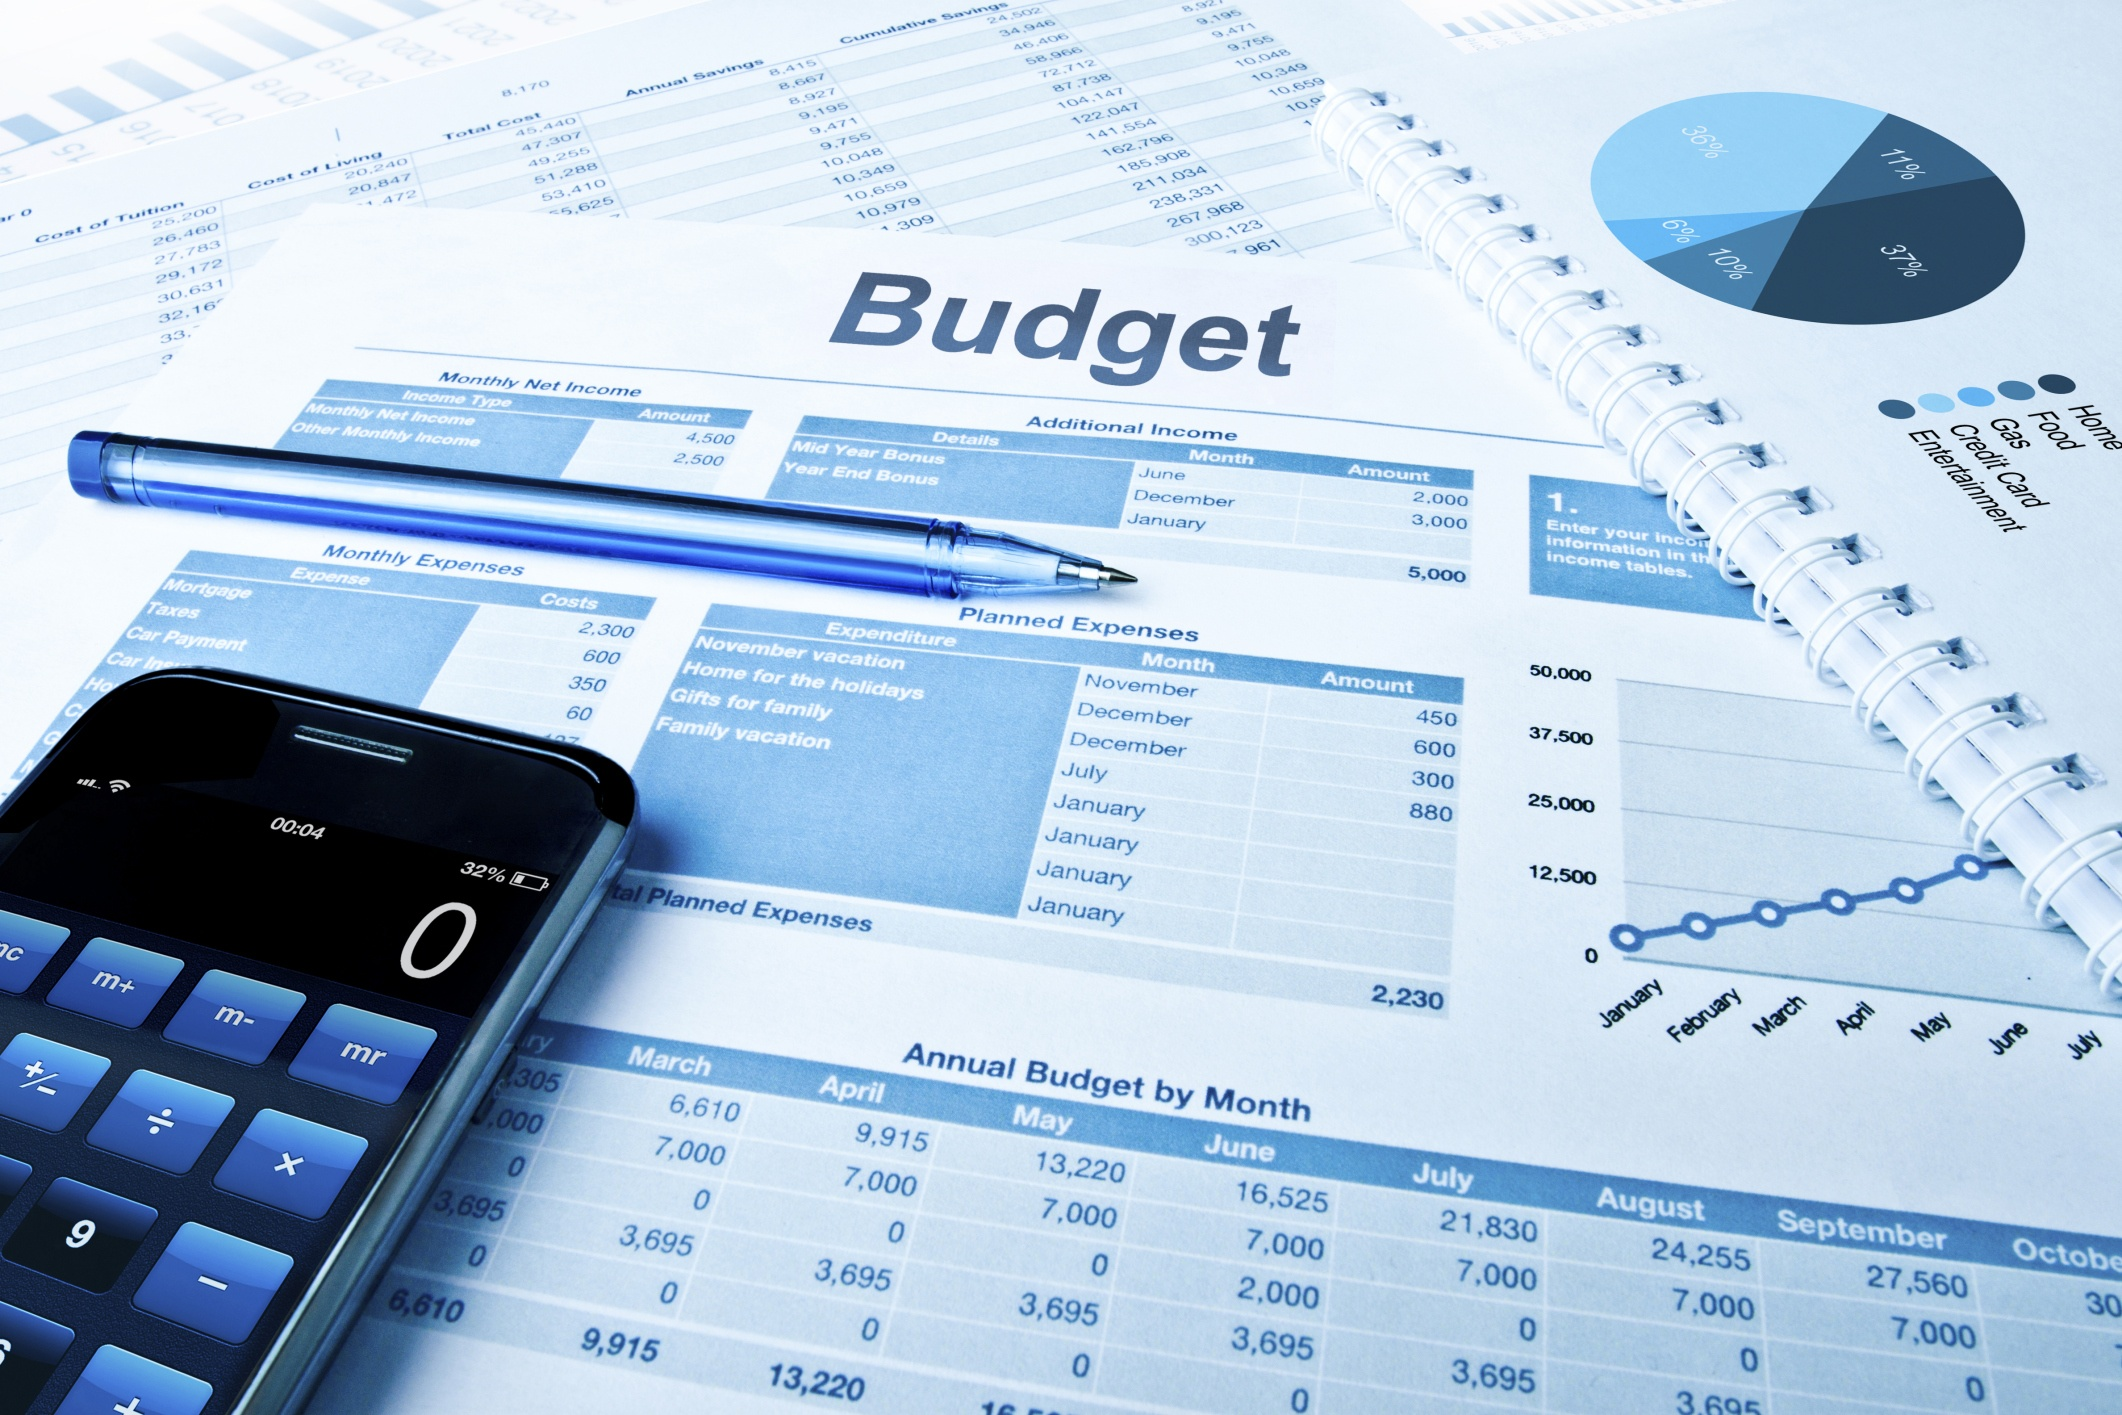 Budgeting Tips for Small Businesses